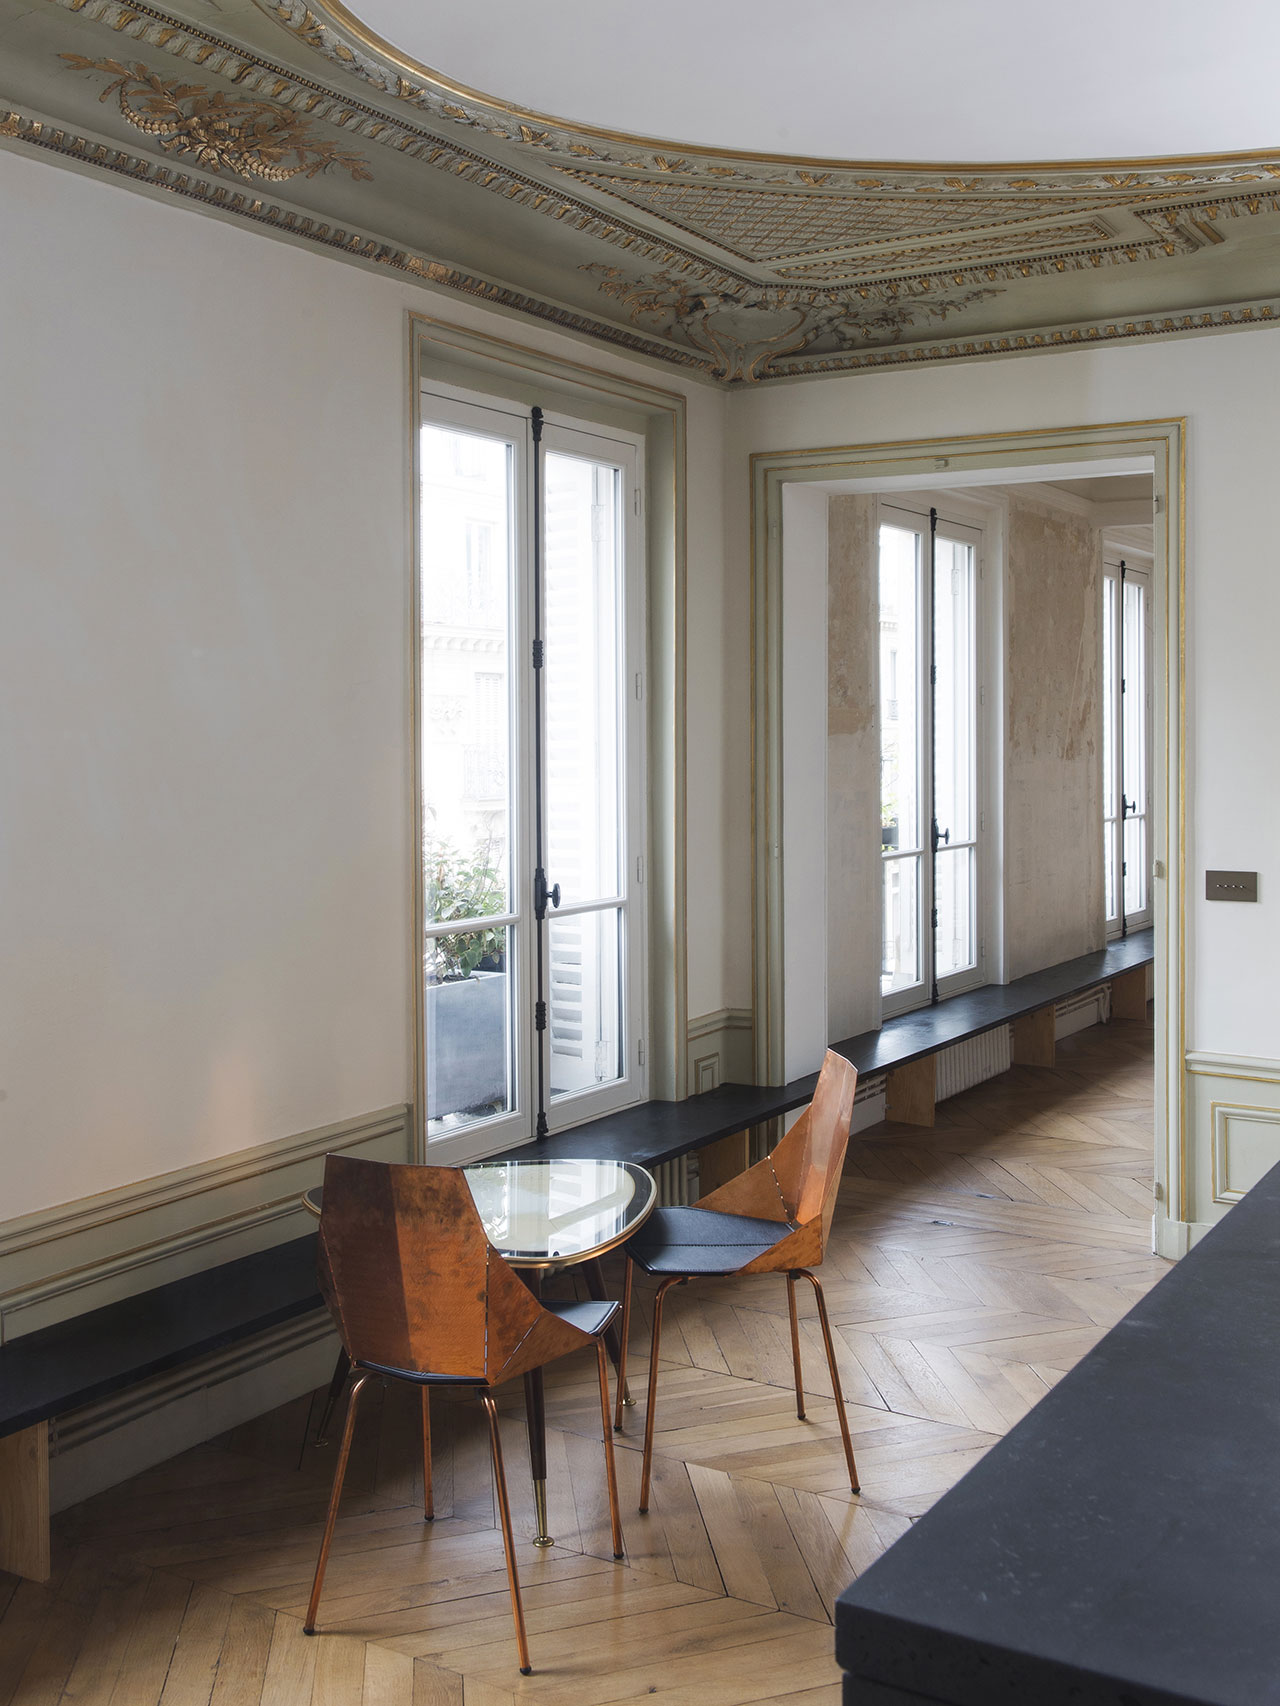 s5_diego_delgado_elias_paris_apartment_photo_by_yannick_labrousse_yatzer how perfect is this design covering the rads and provding great seating for guests at a party. Genius.jpg